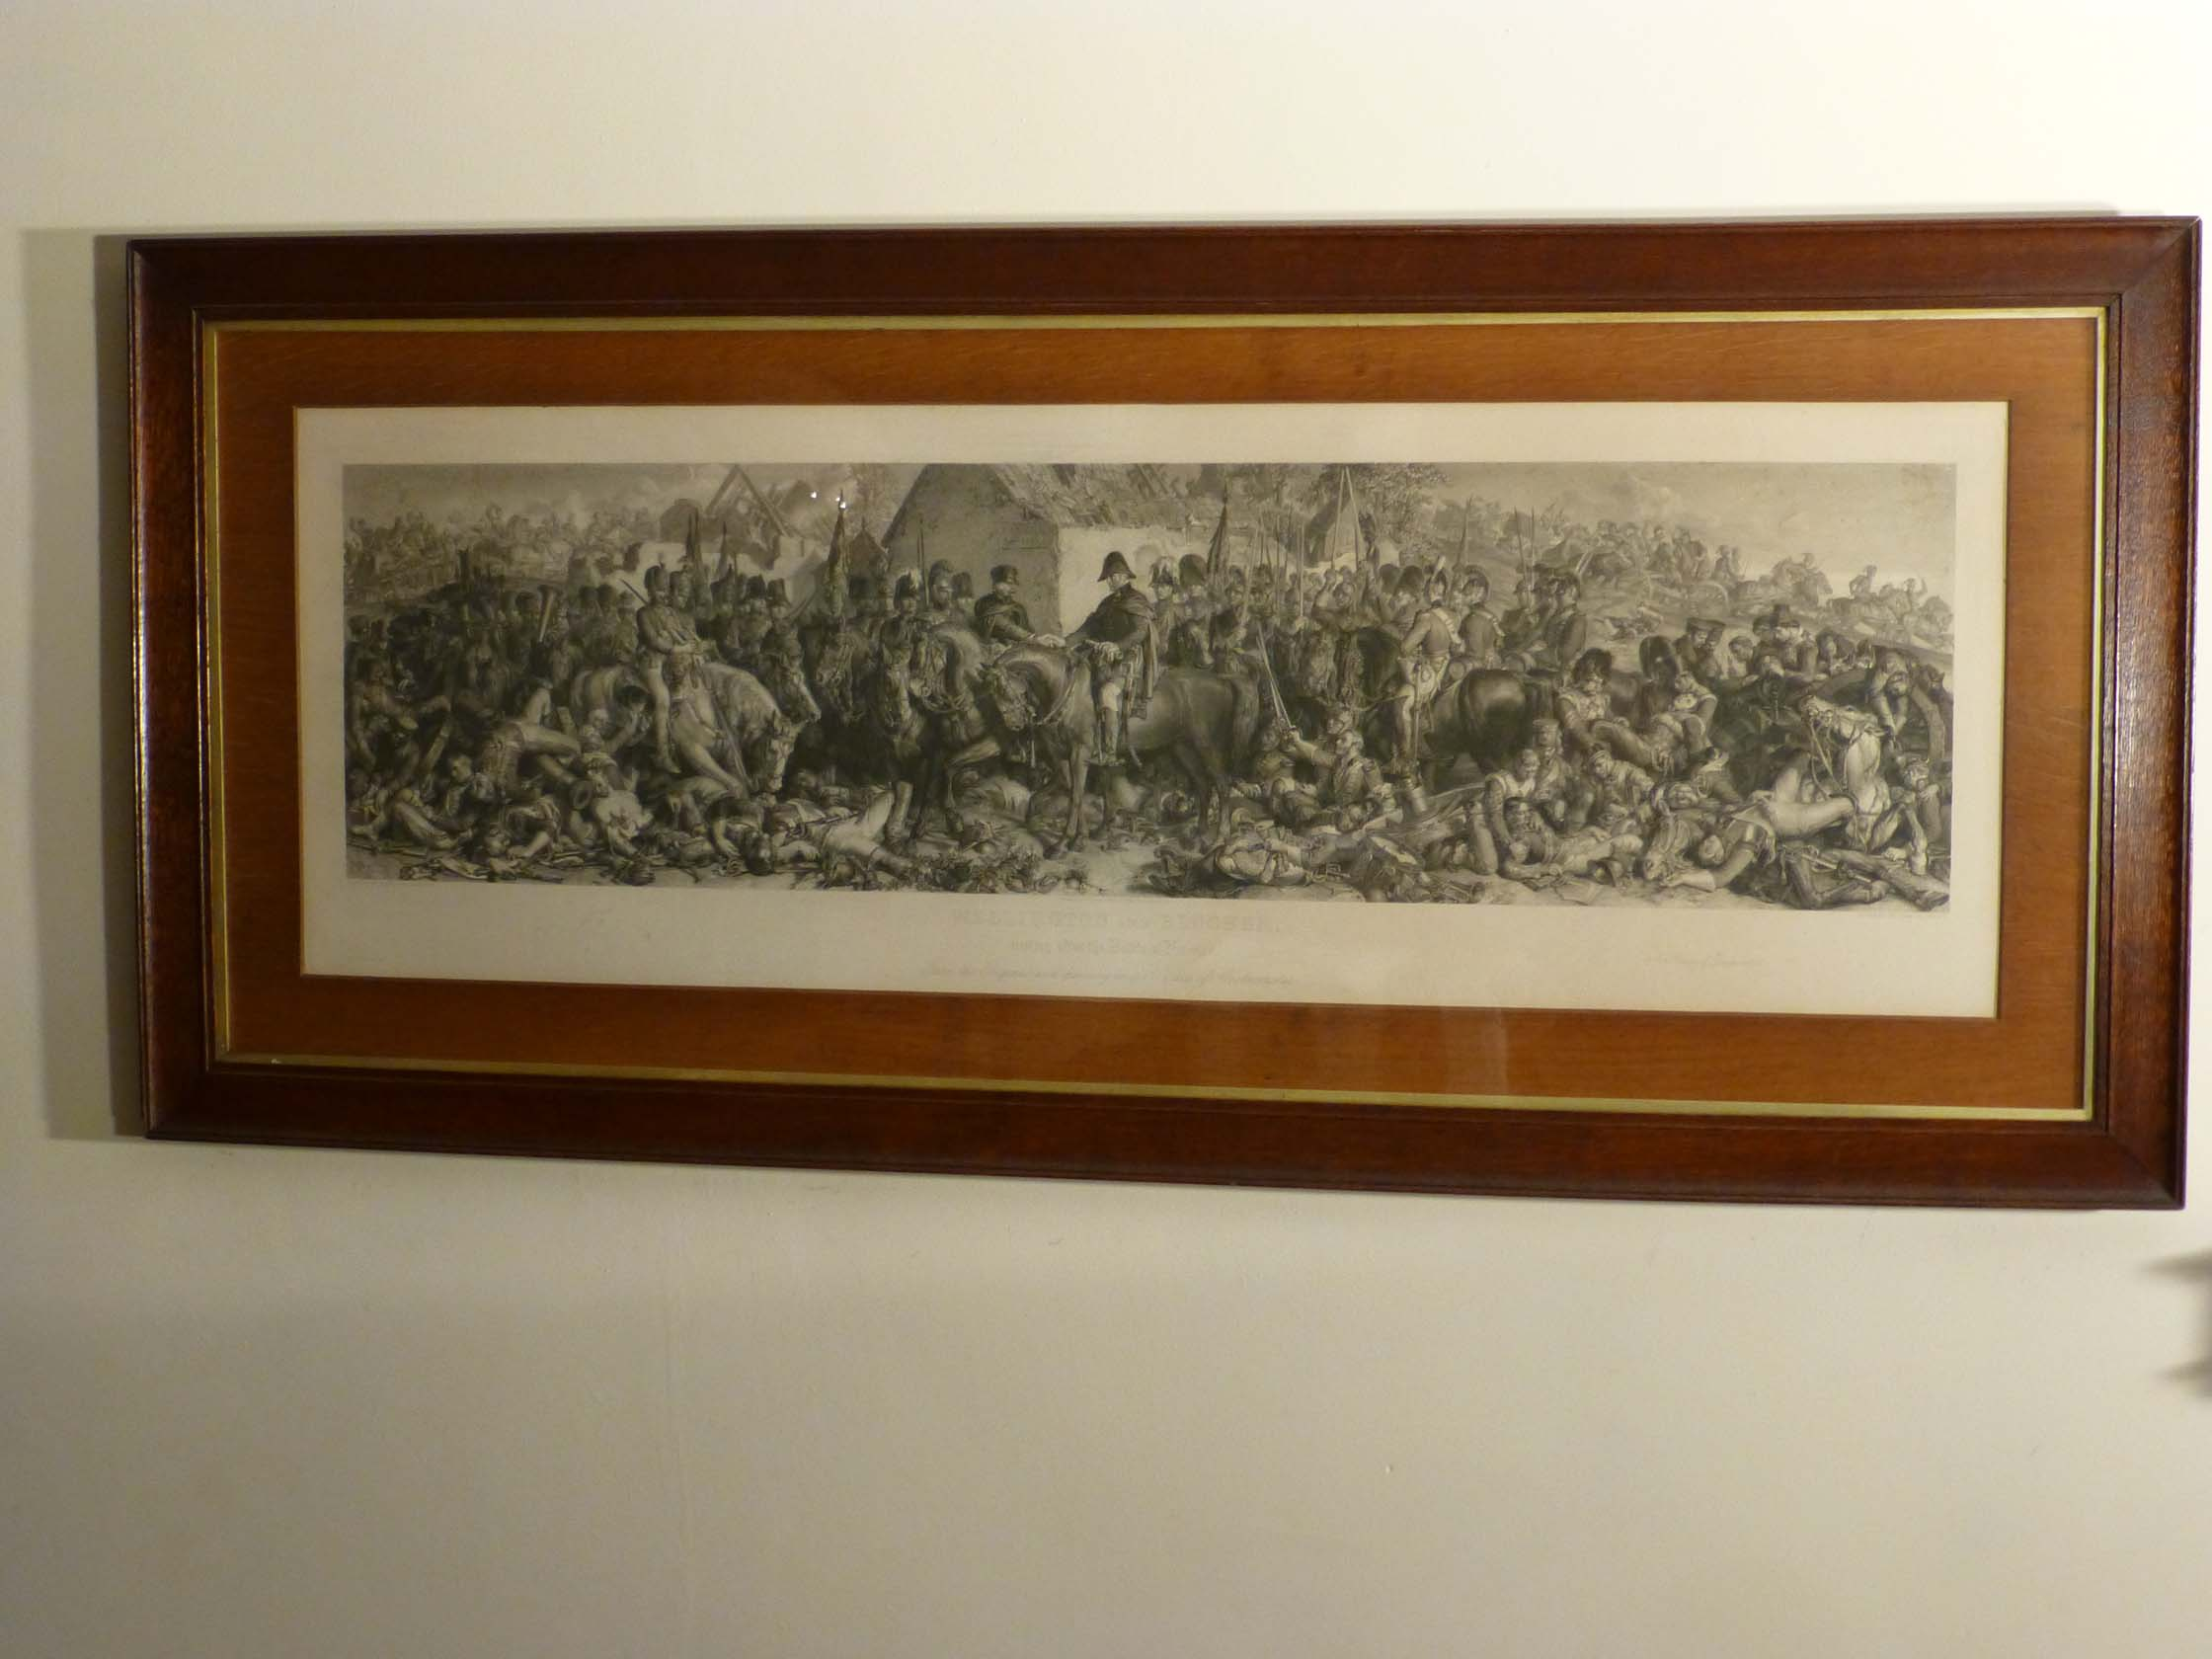 Engraving Of The Battle Of Waterloo Showing Wellington